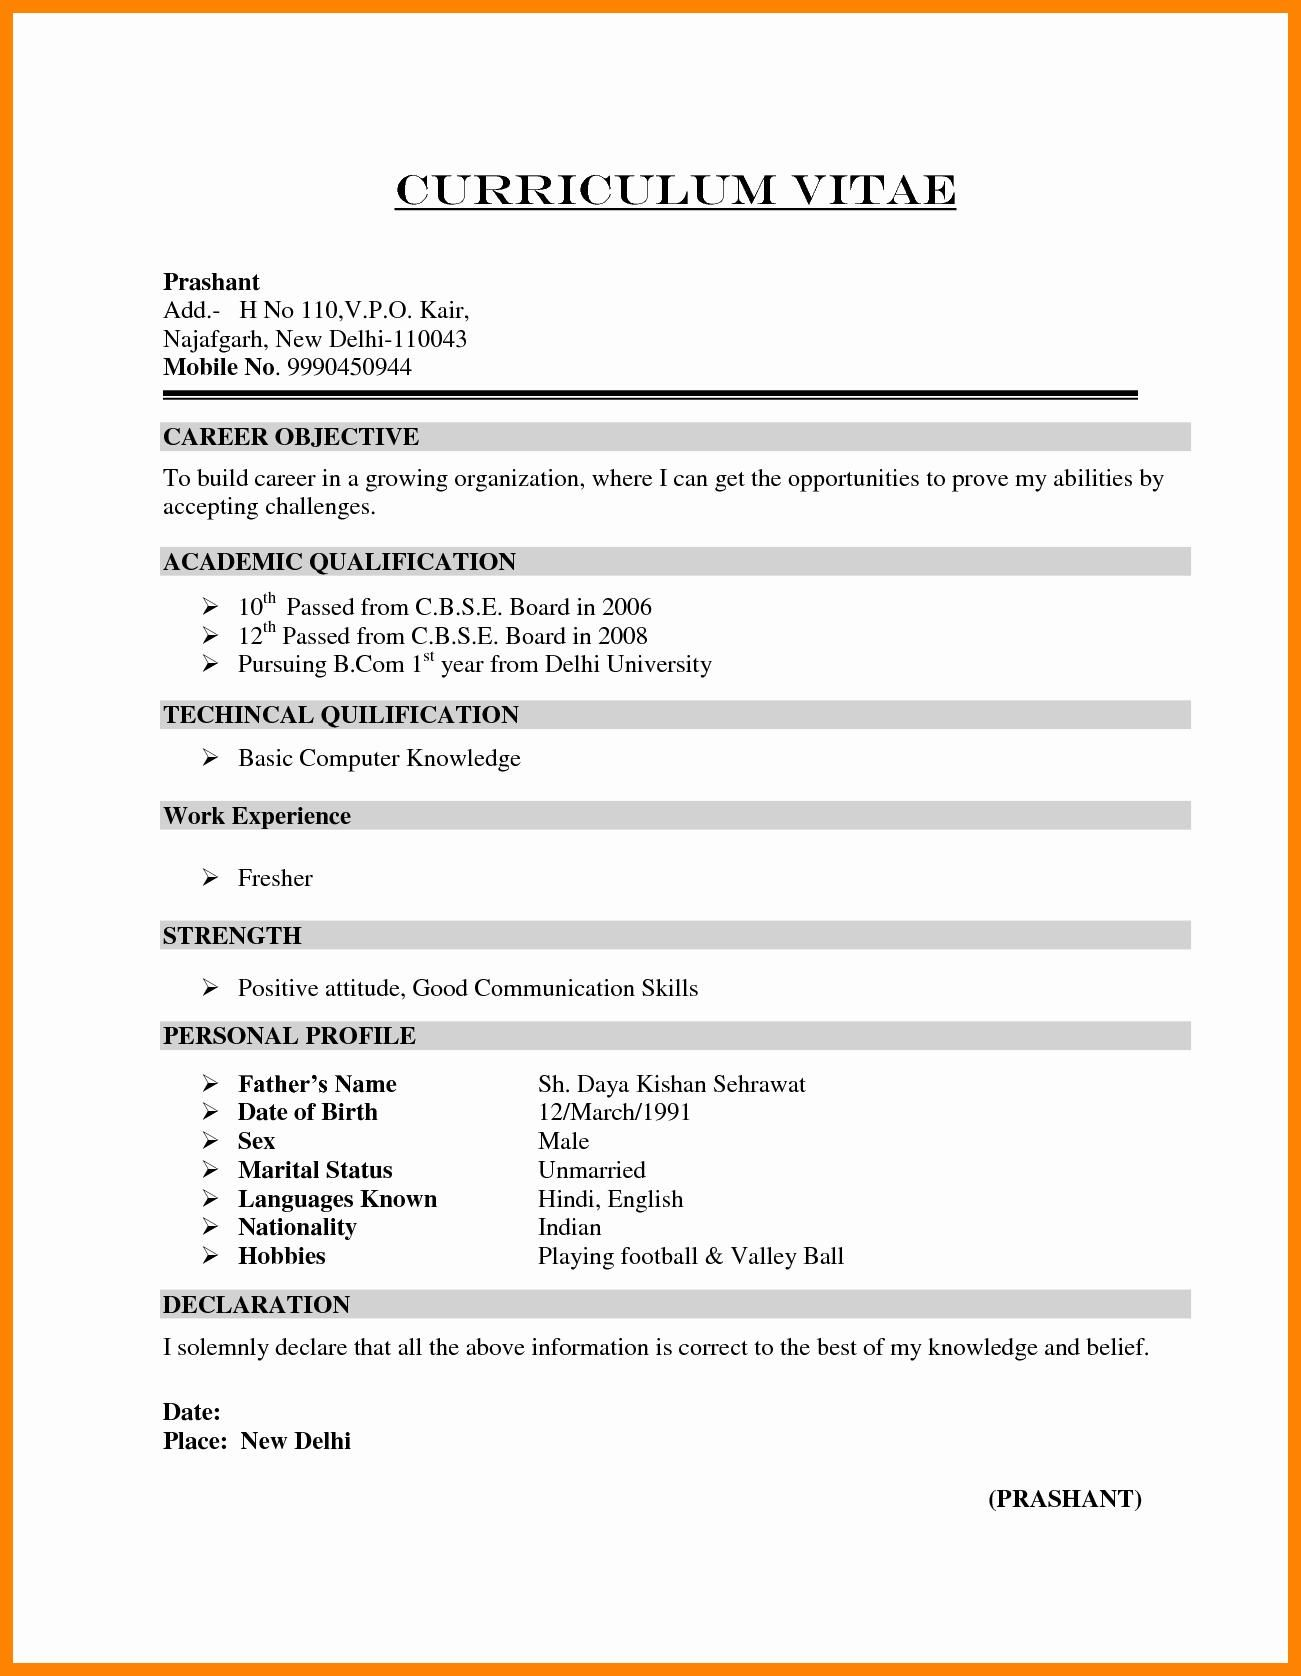 sample resume format for mechanical engineering freshers filetype doc elegant attractive b e